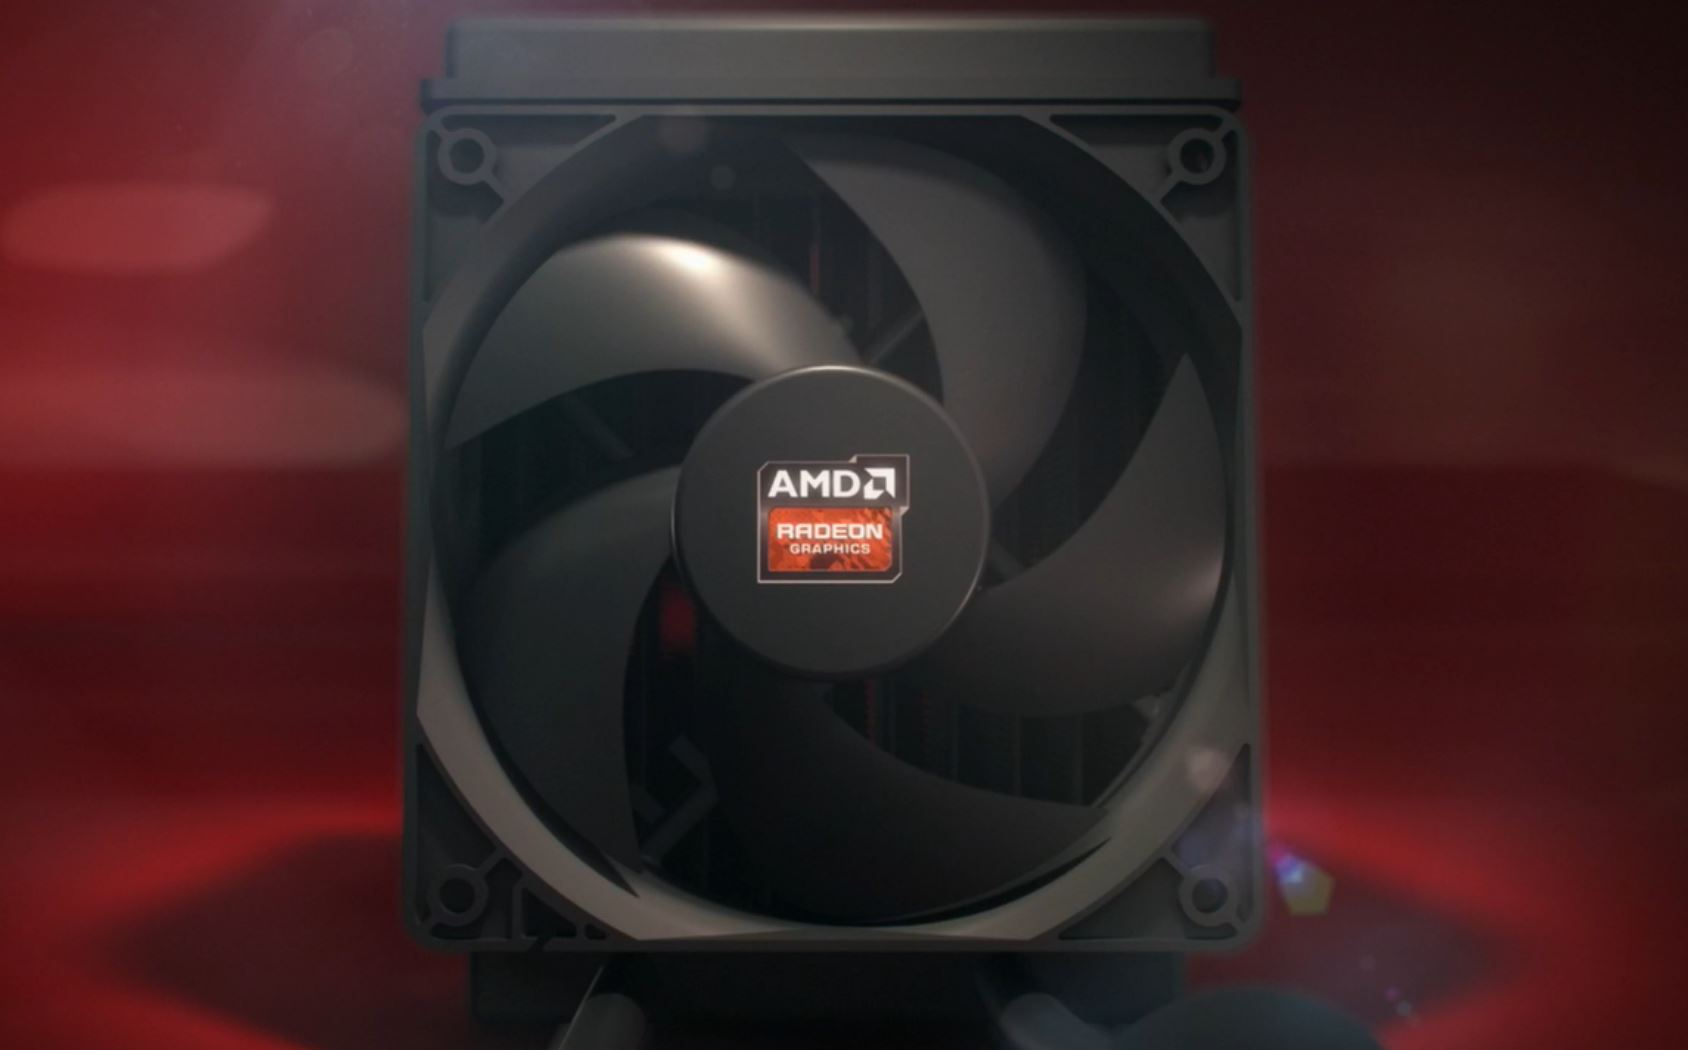 AMD Radeon Fury radiator